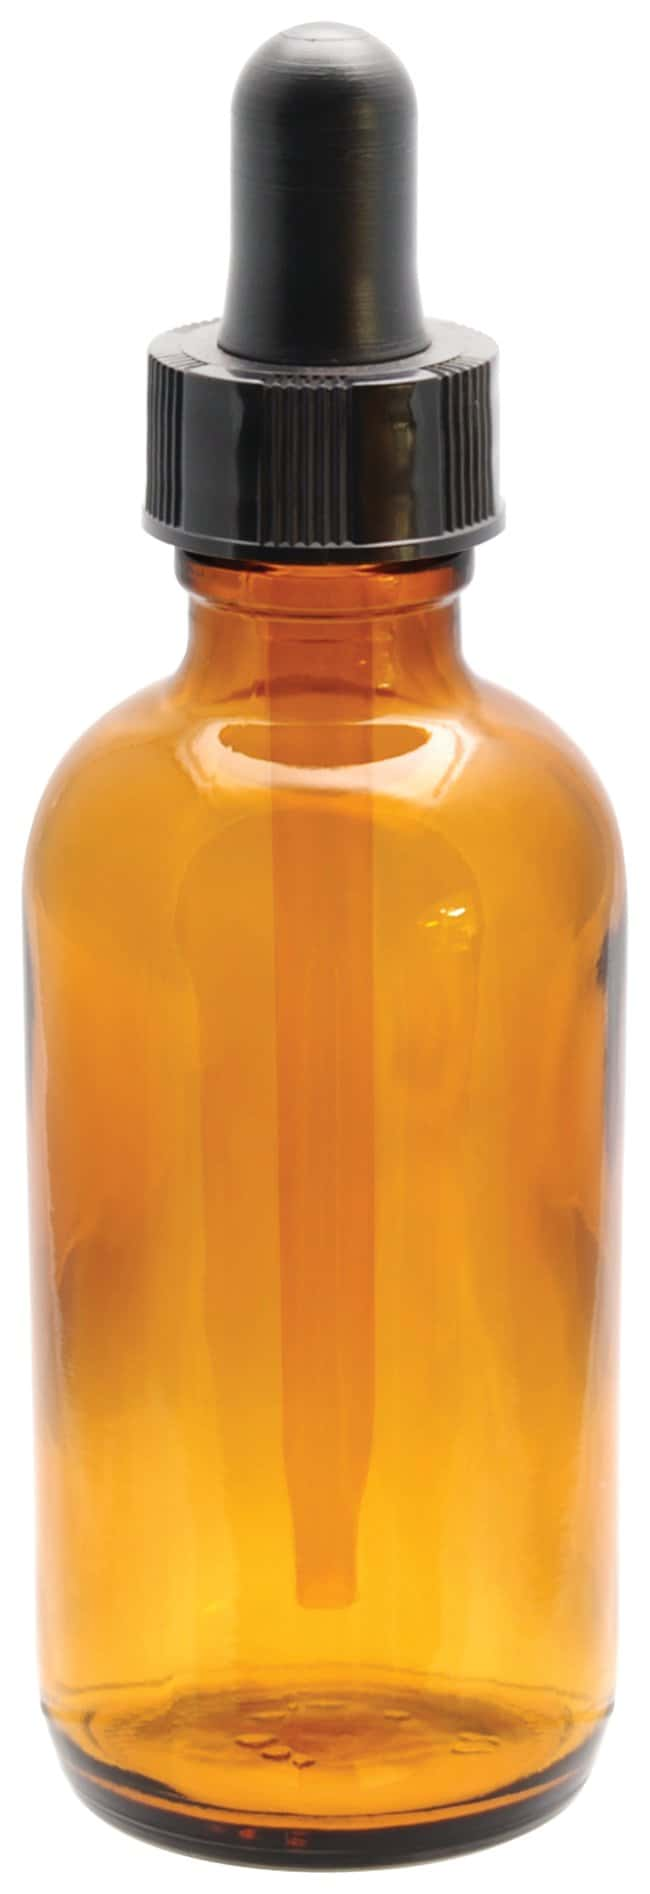 Fisherbrand™ Amber Glass Dropping Bottles